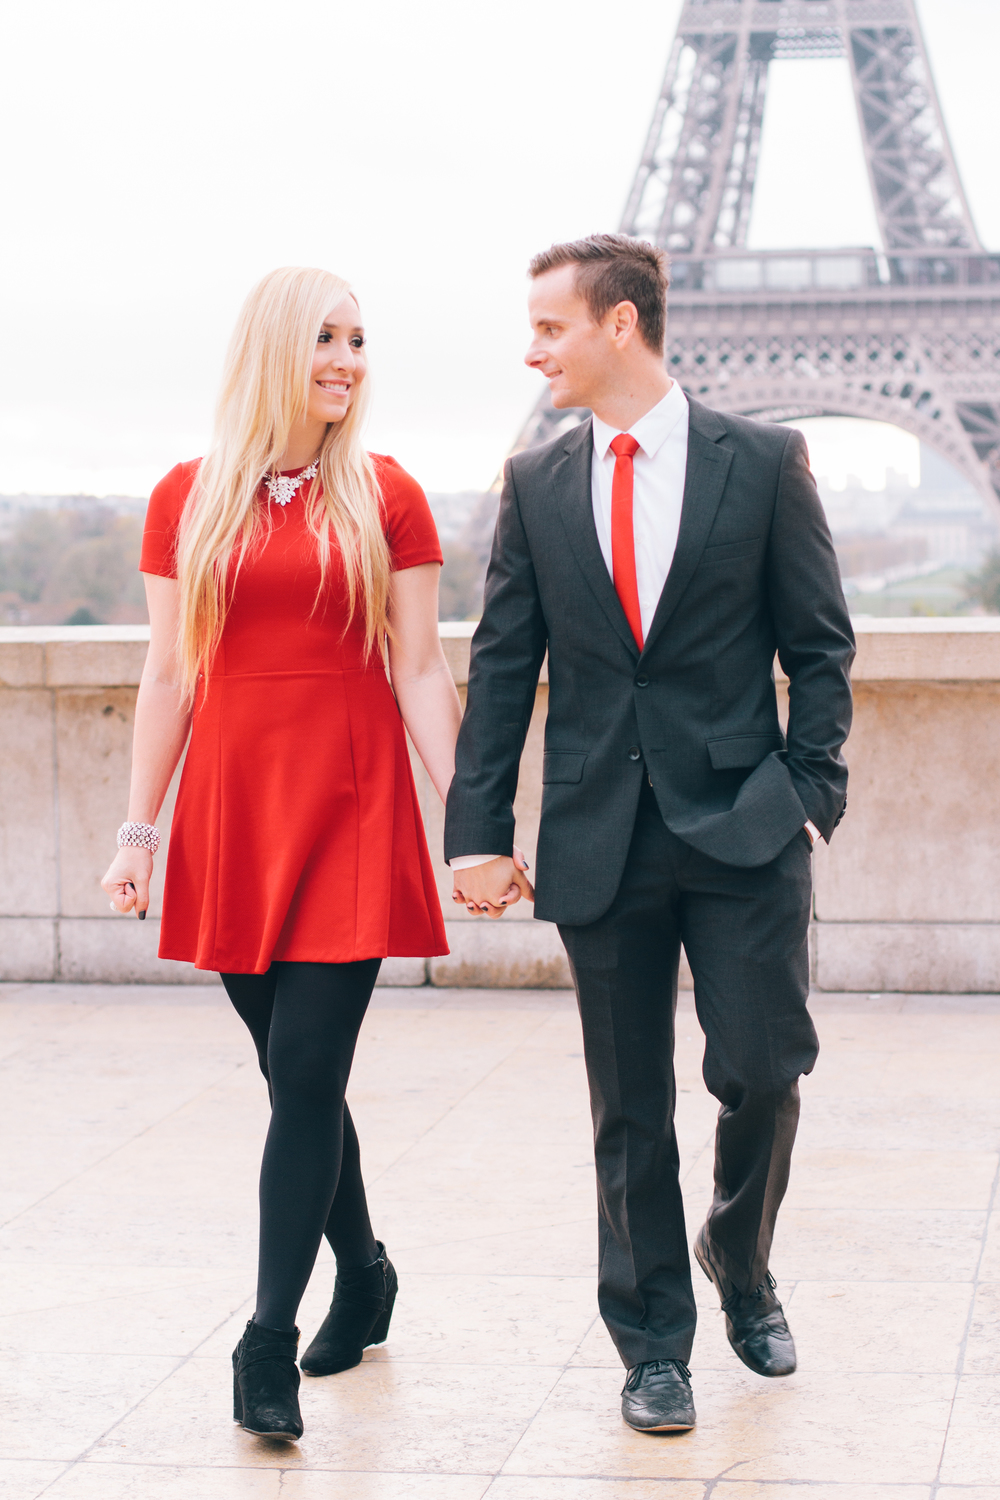 FLYTOGRAPHER | Paris Vacation Photographer - 7